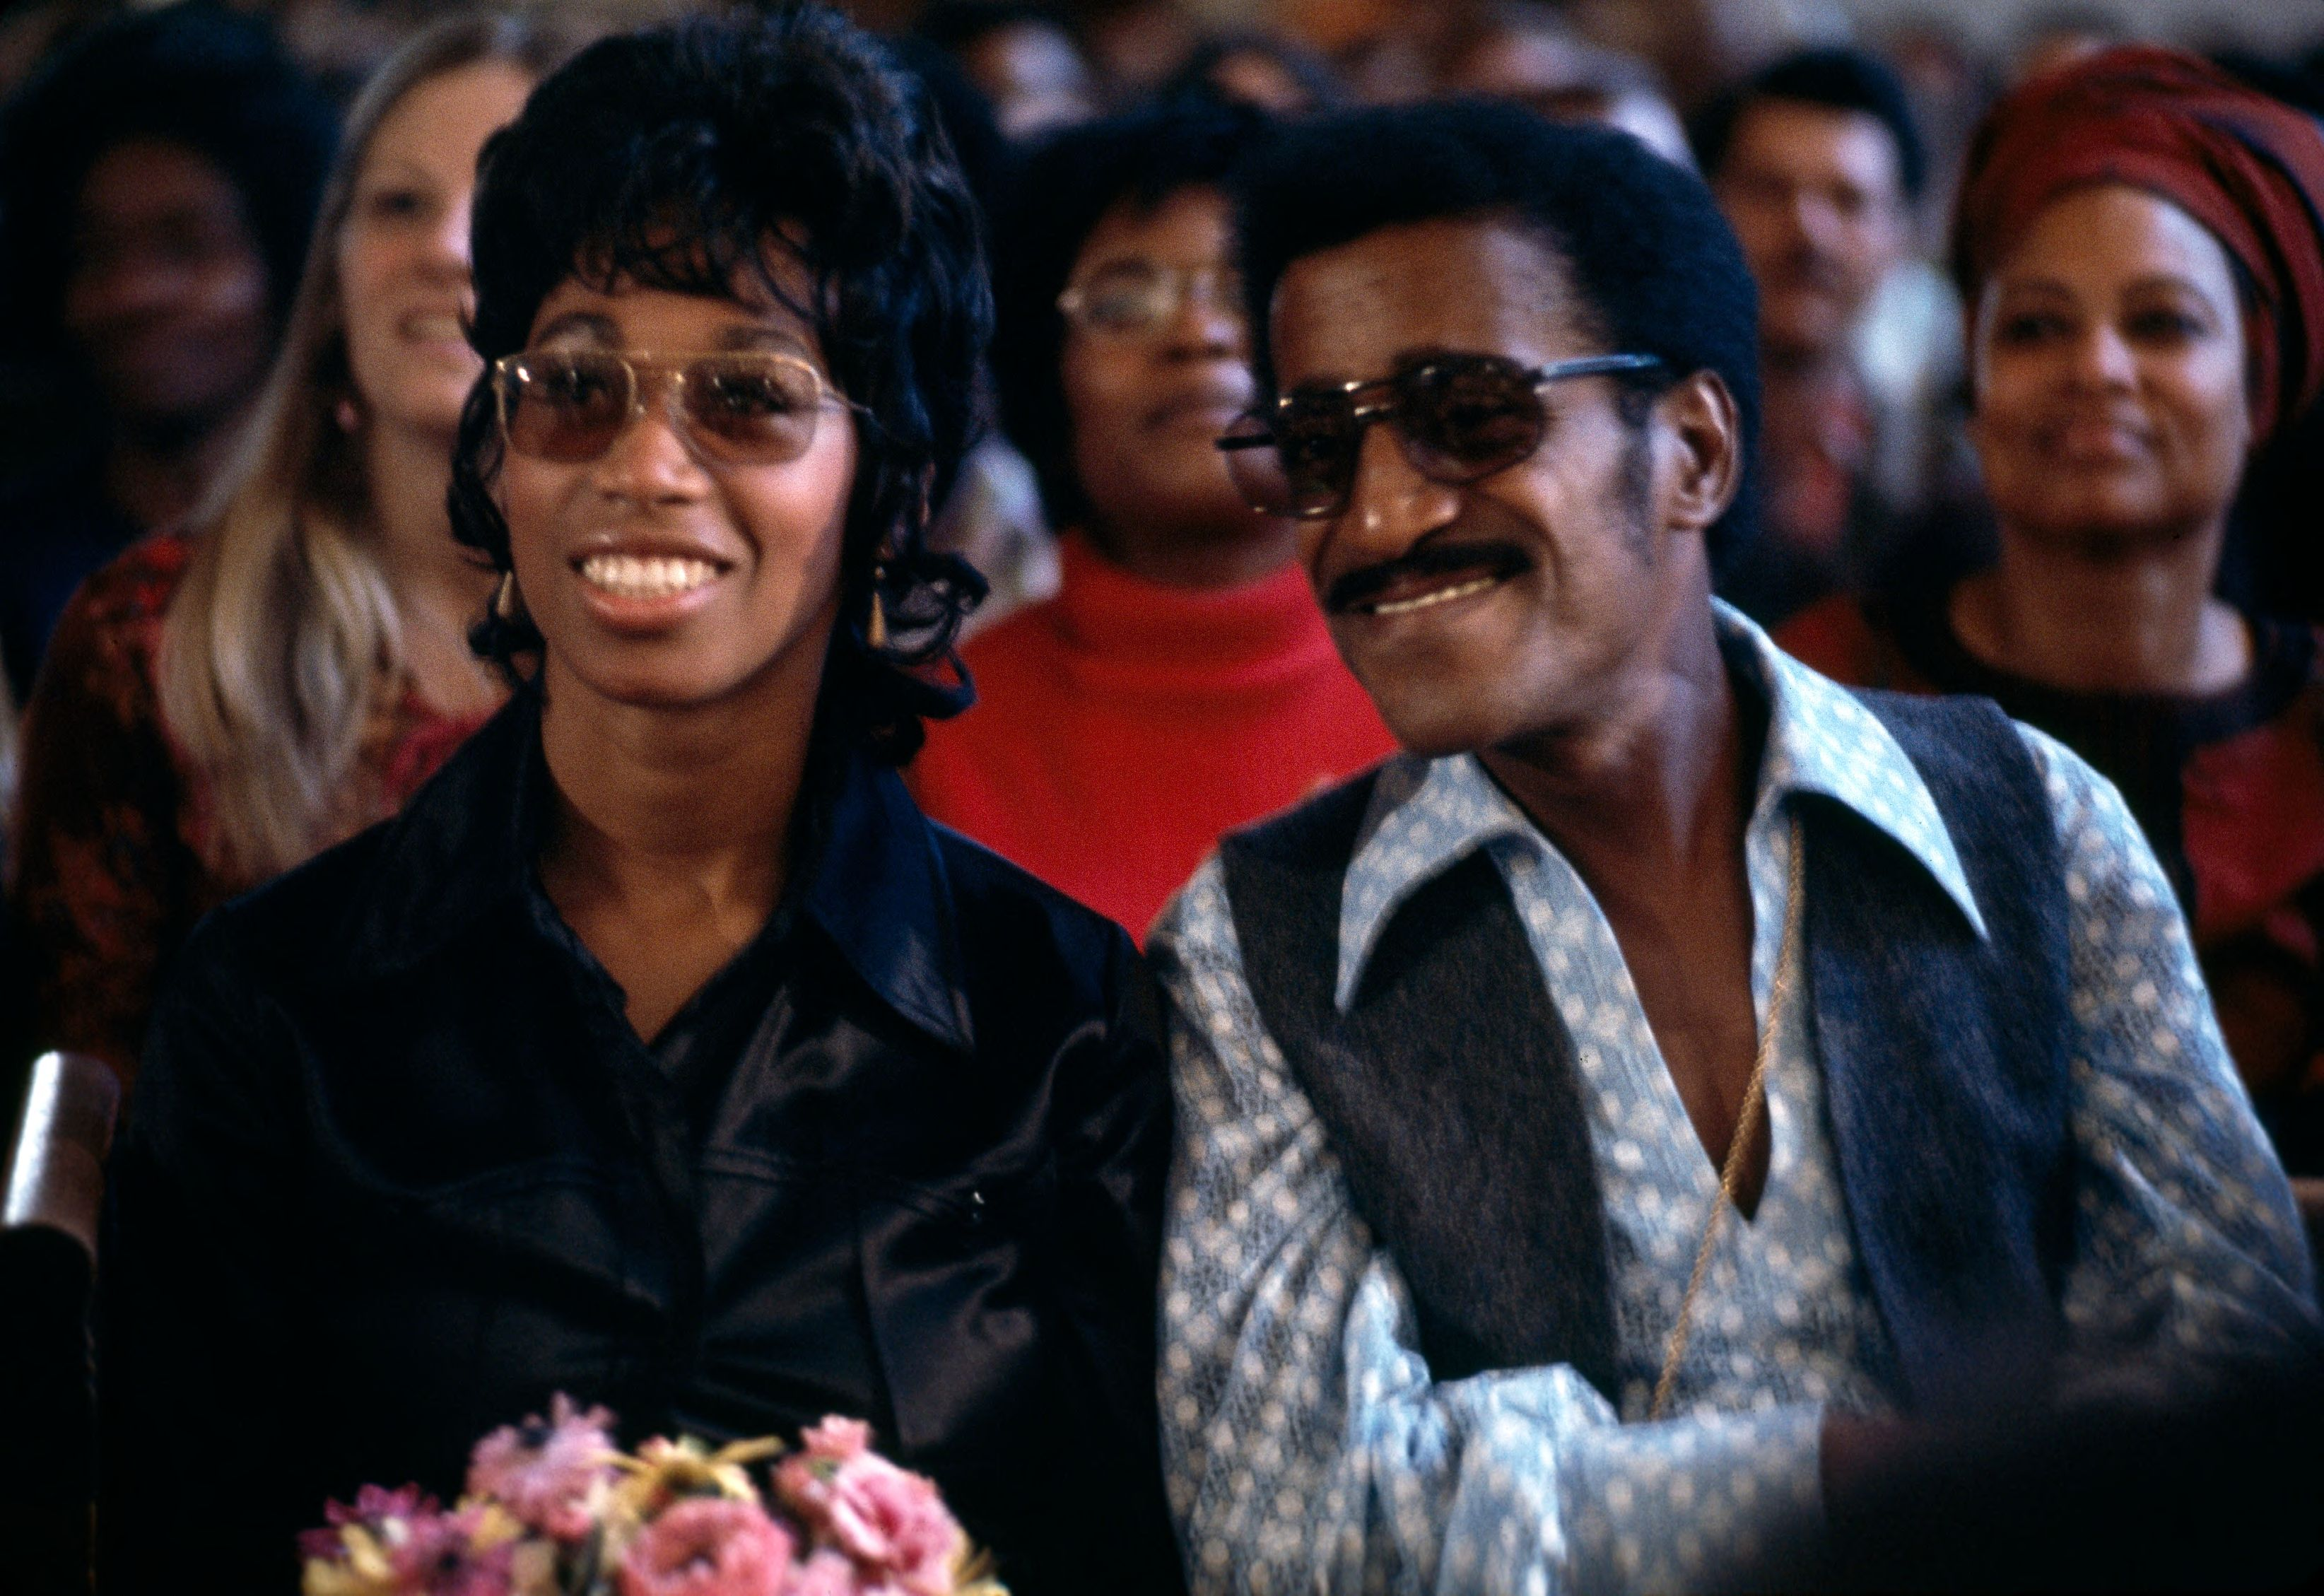 Sammy Davis Jr. and his wife at a Glide Memorial Church service in 1972